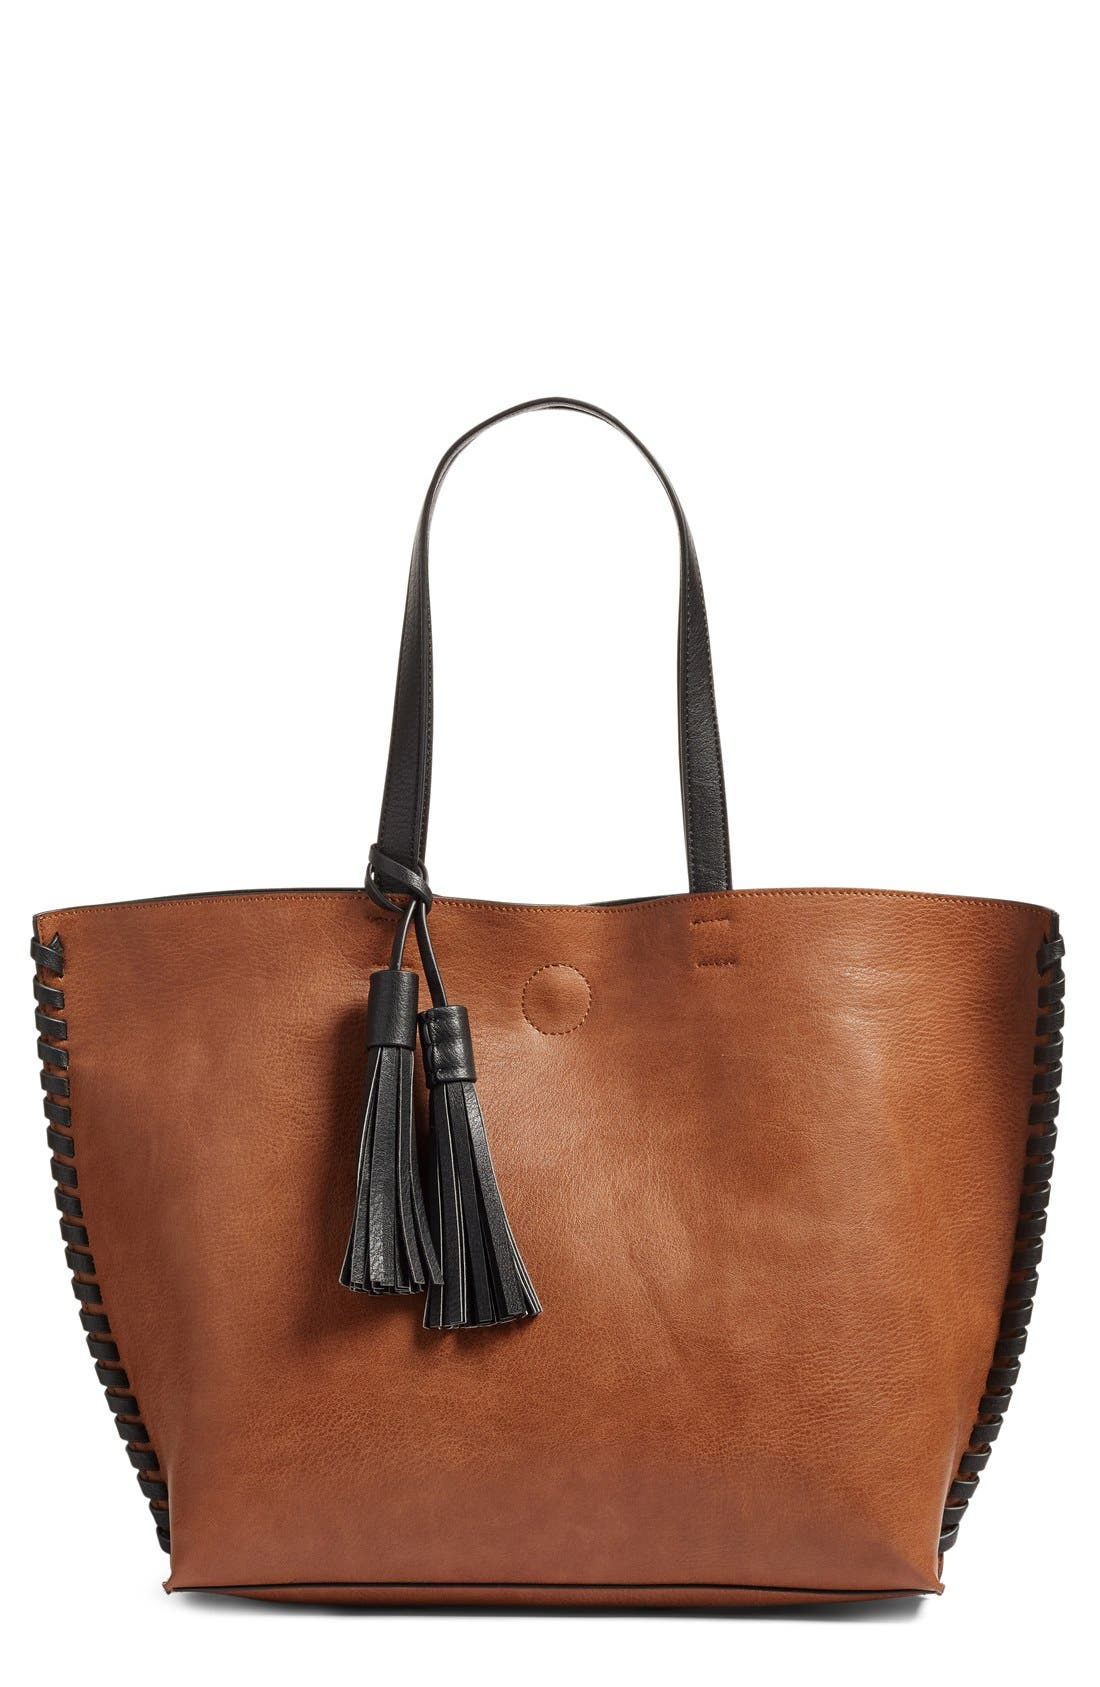 Main Image - Phase 3 Whipstitch Tassel Faux Leather Tote